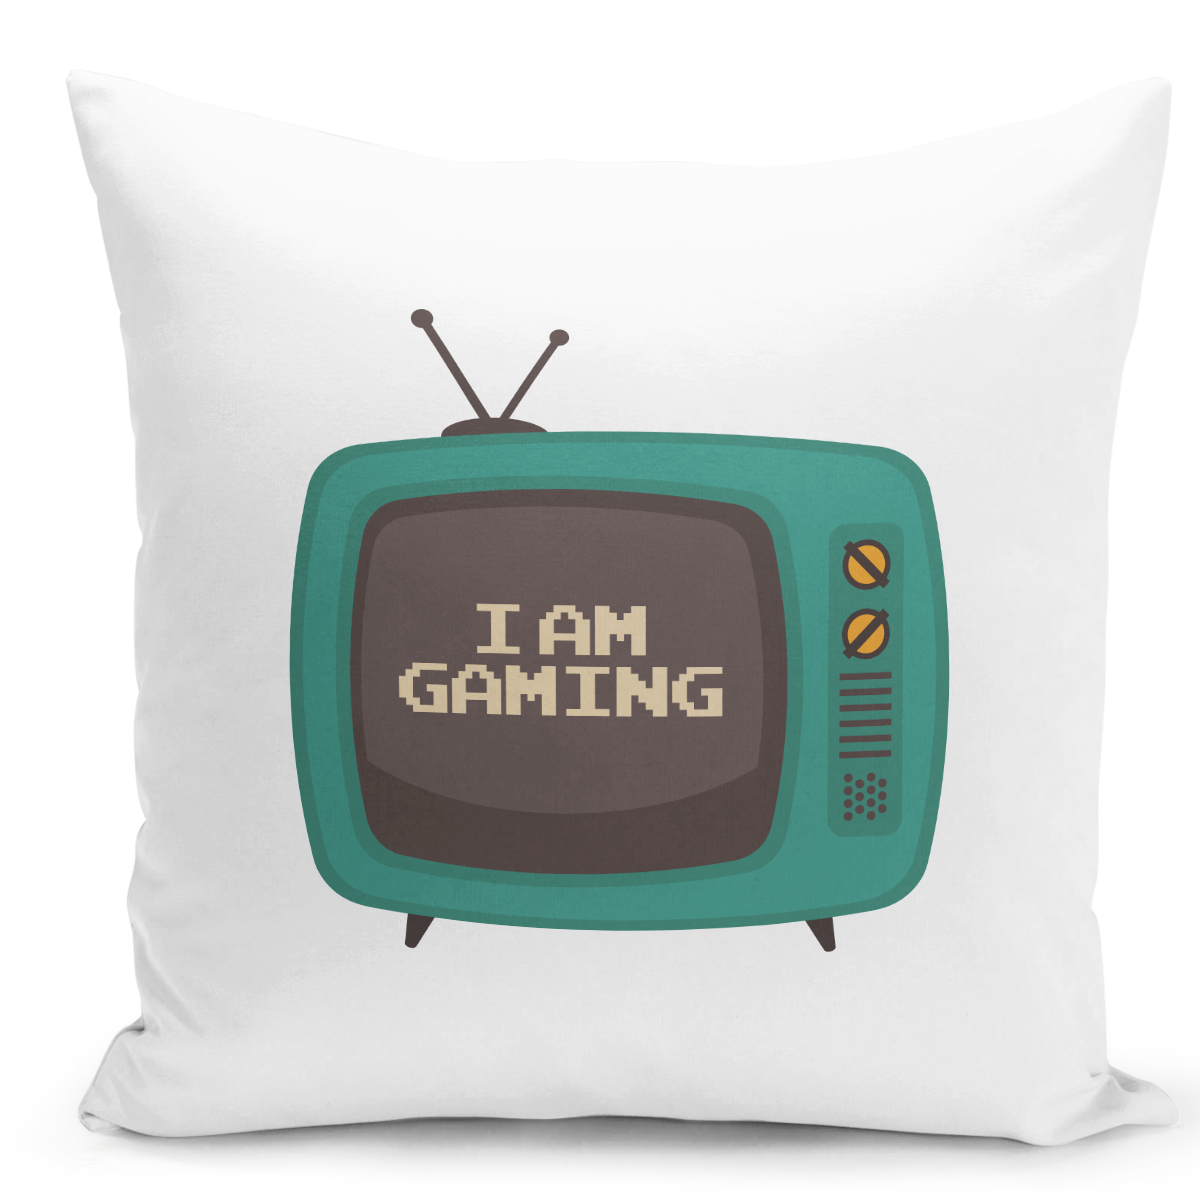 White-Throw-Pillow-Vintage-Old-Gamer-Im-Gaming---Pure-White-Printed-16-x-16-inch-Square-Home-Decor-Couch-Pillow-